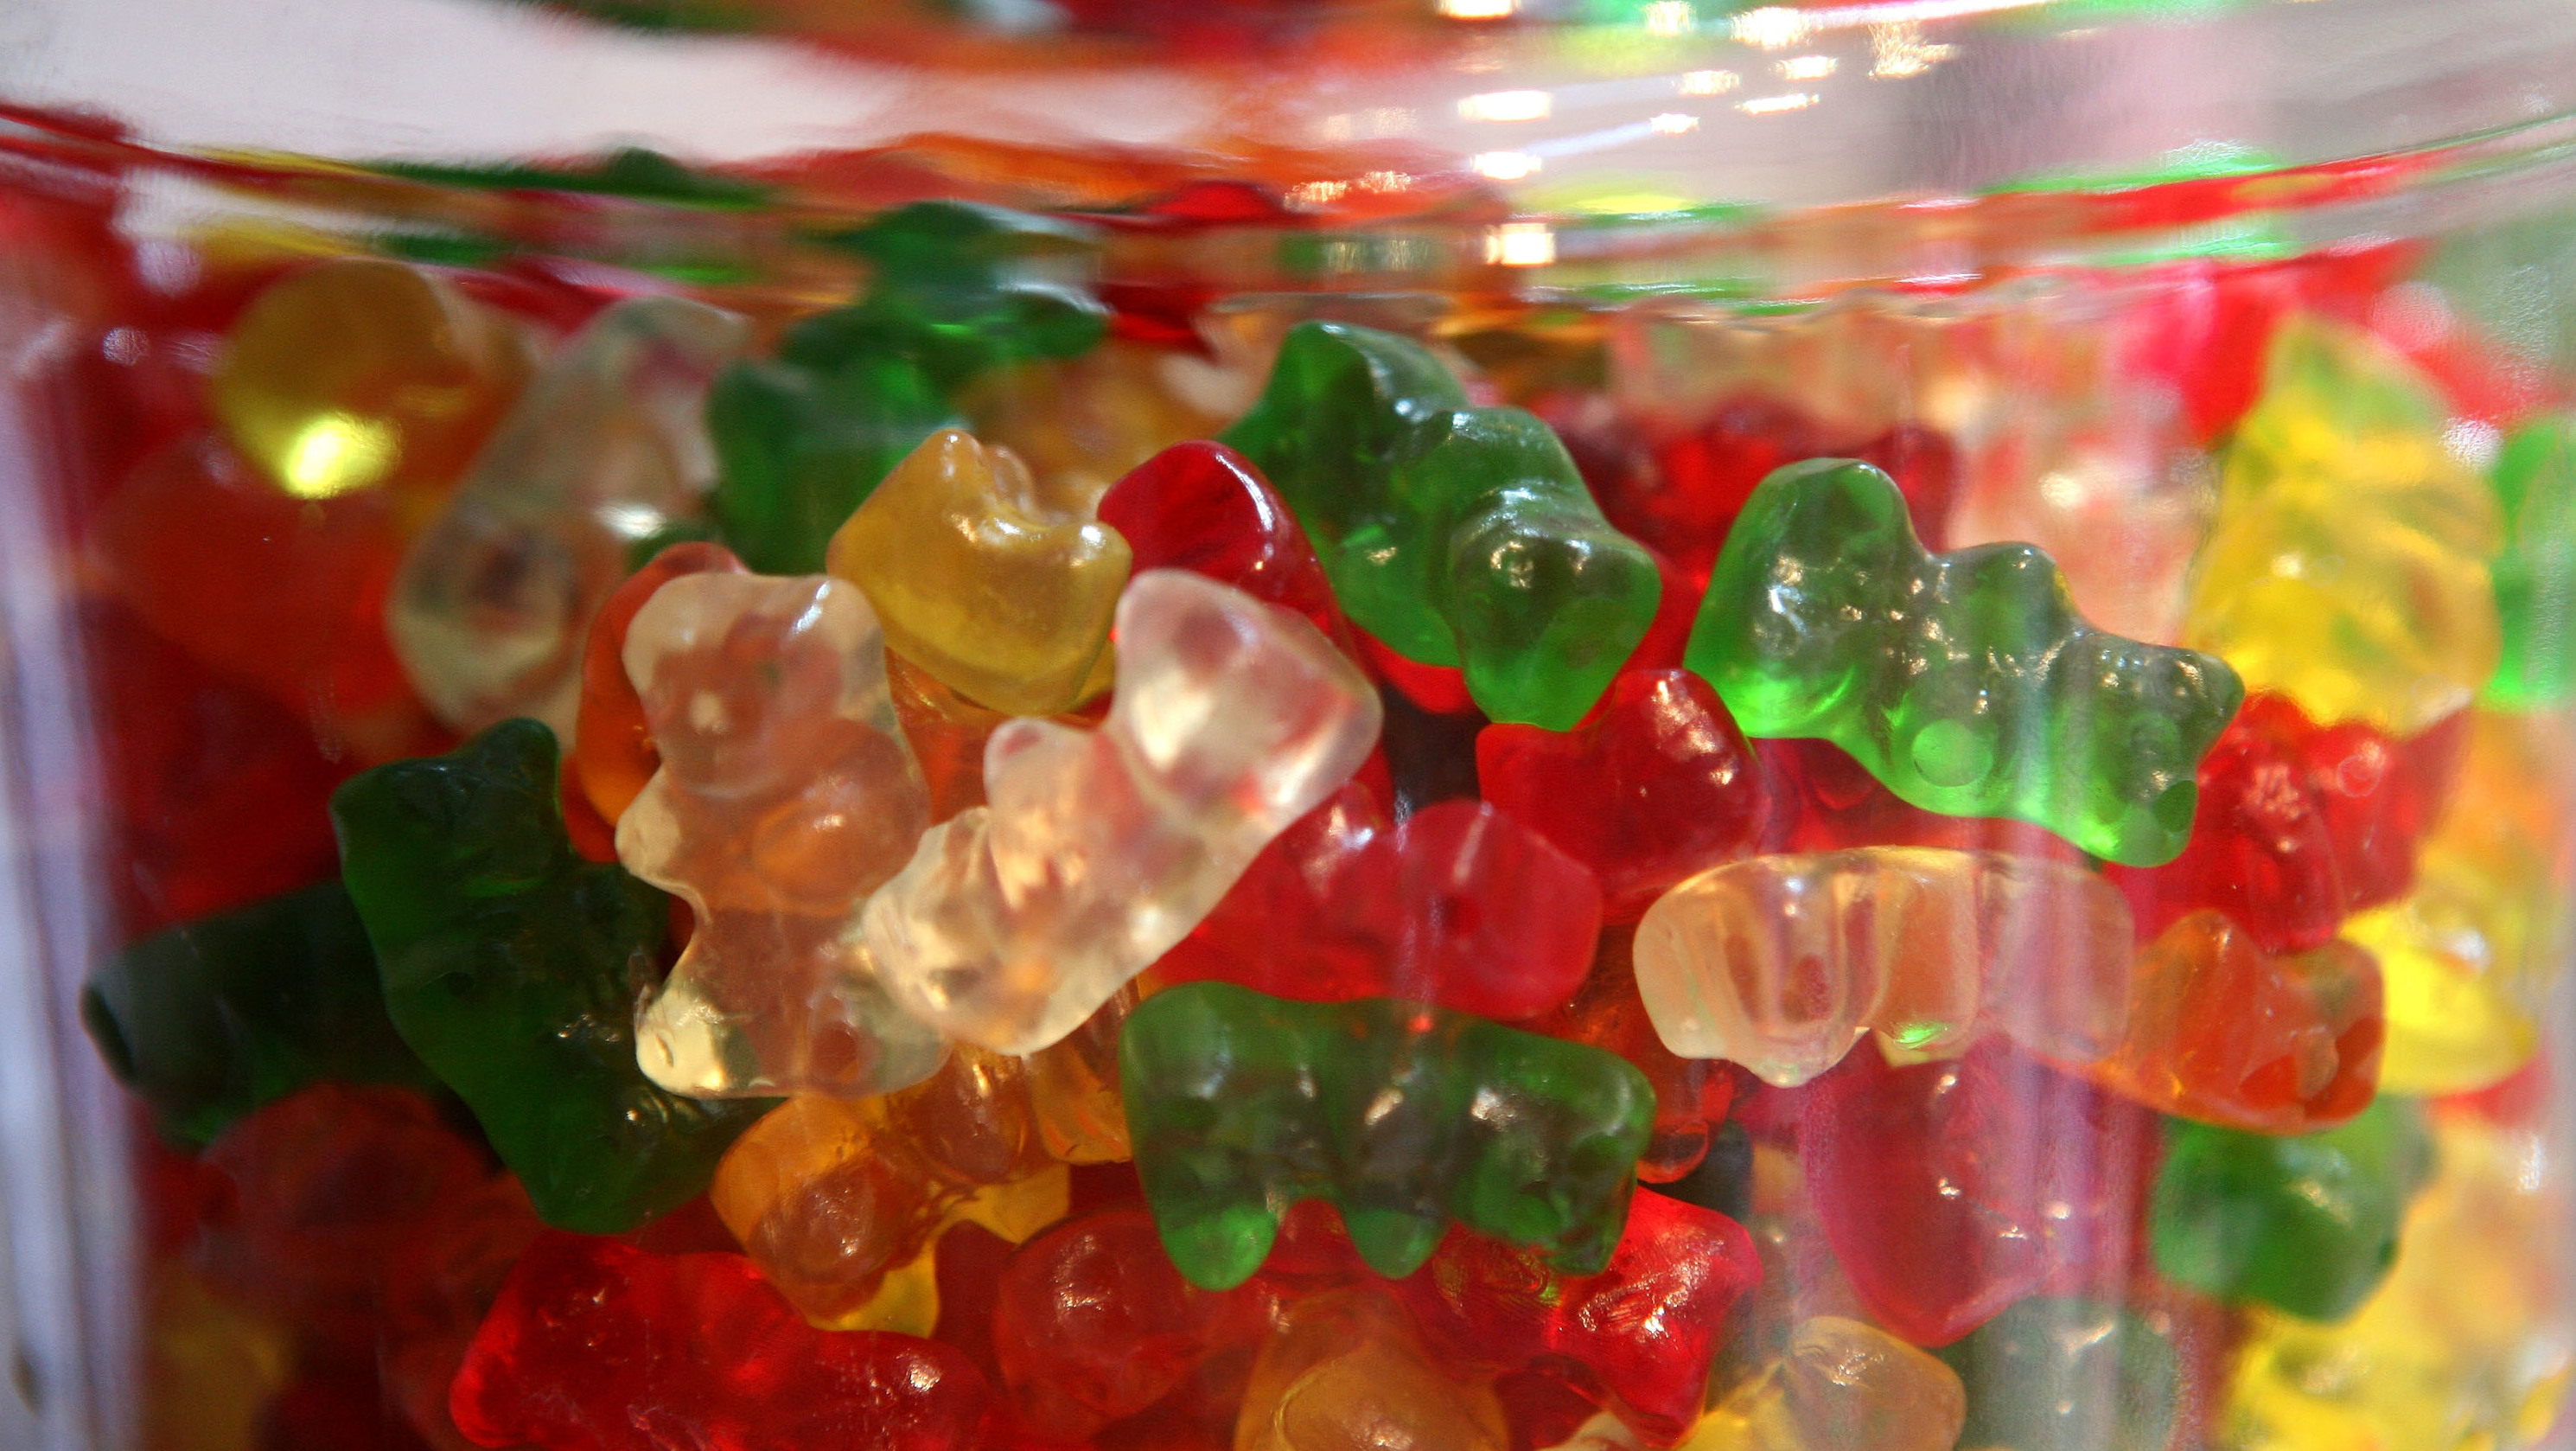 Are Gummy Bear Flavors Just Fooling Our Brains?